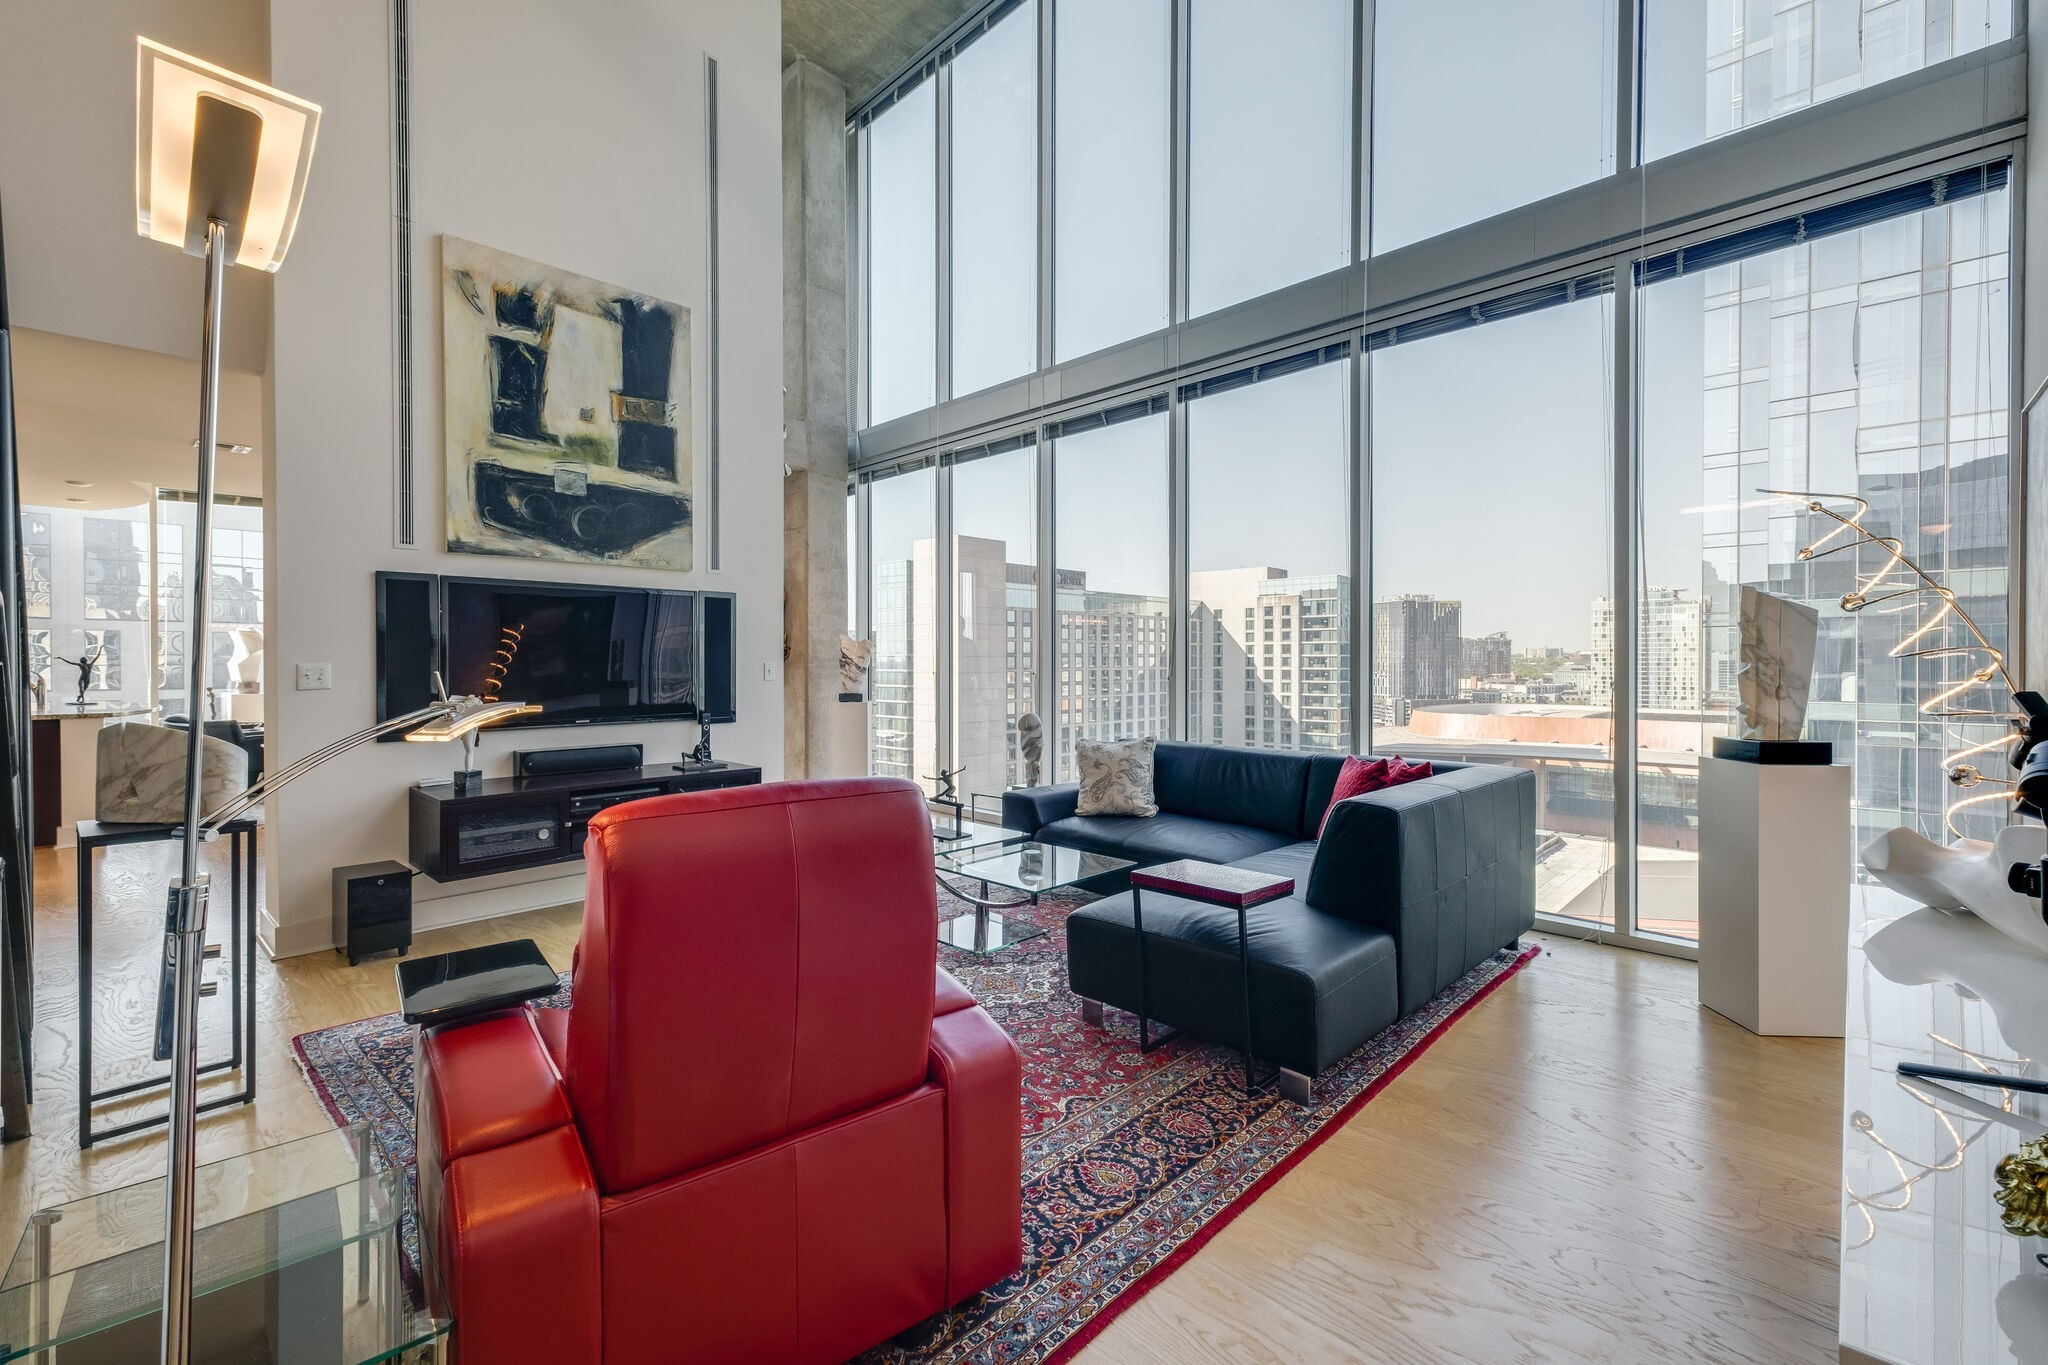 Luxury in the heart of Nashville! This 2 bedroom, 2.5 bath Encore condo is absolutely breathtaking. At just over 2,000 sqft, this unit has many unique features: 25ft floor to ceiling windows, two private terraces that allow you to look as far as the eye can see over downtown, two premium parking spots, and amazing amenities like the gym, clubhouse, pool, and concierge. All of this and within a 2 minute walk to Broadway!! See video in link!